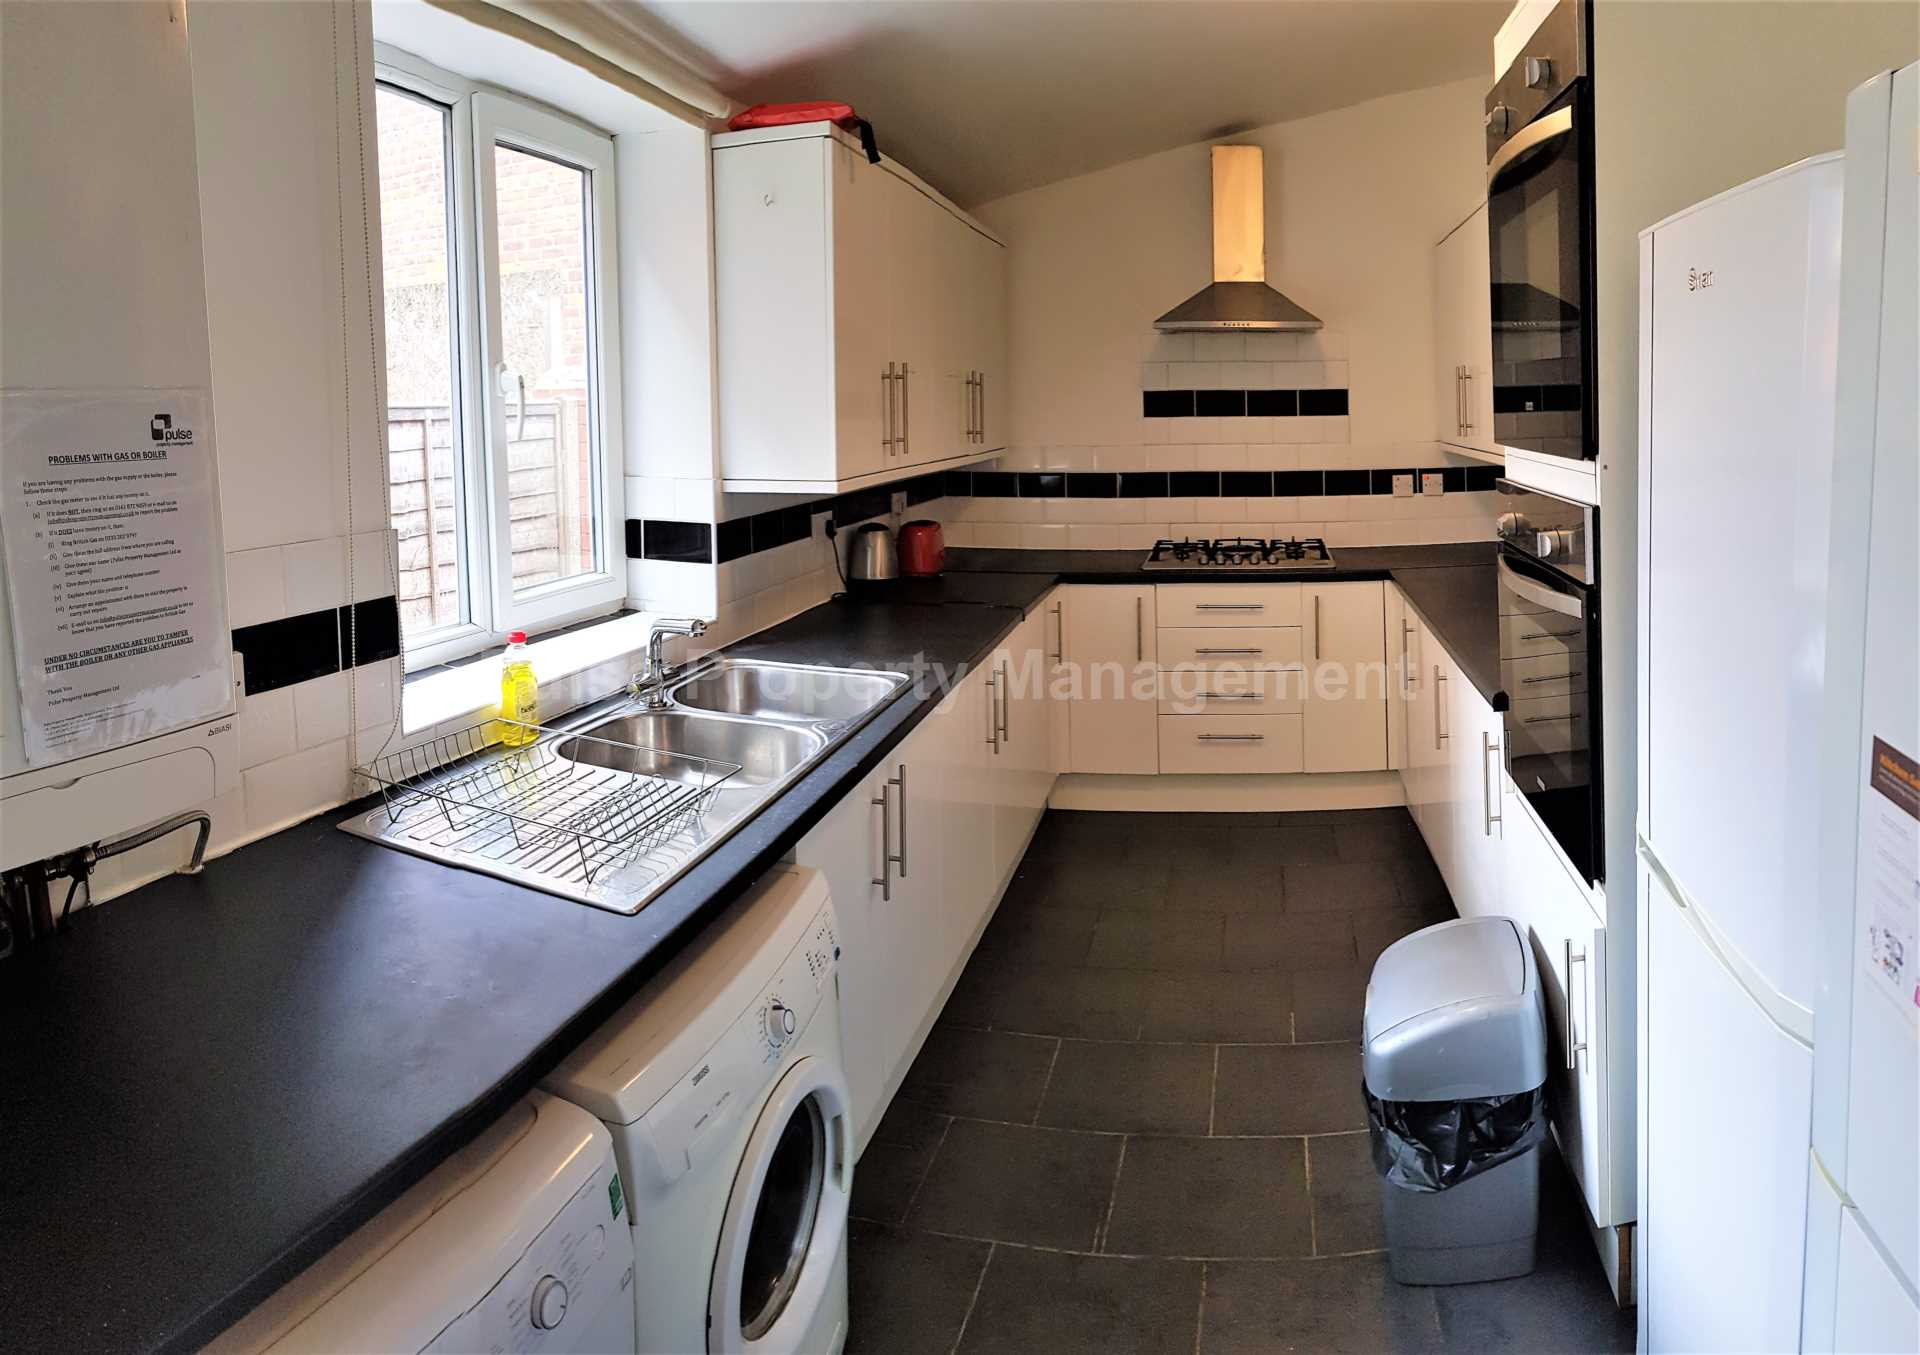 7 bed House (unspecified) for rent in Manchester. From Pulse Property Management Ltd